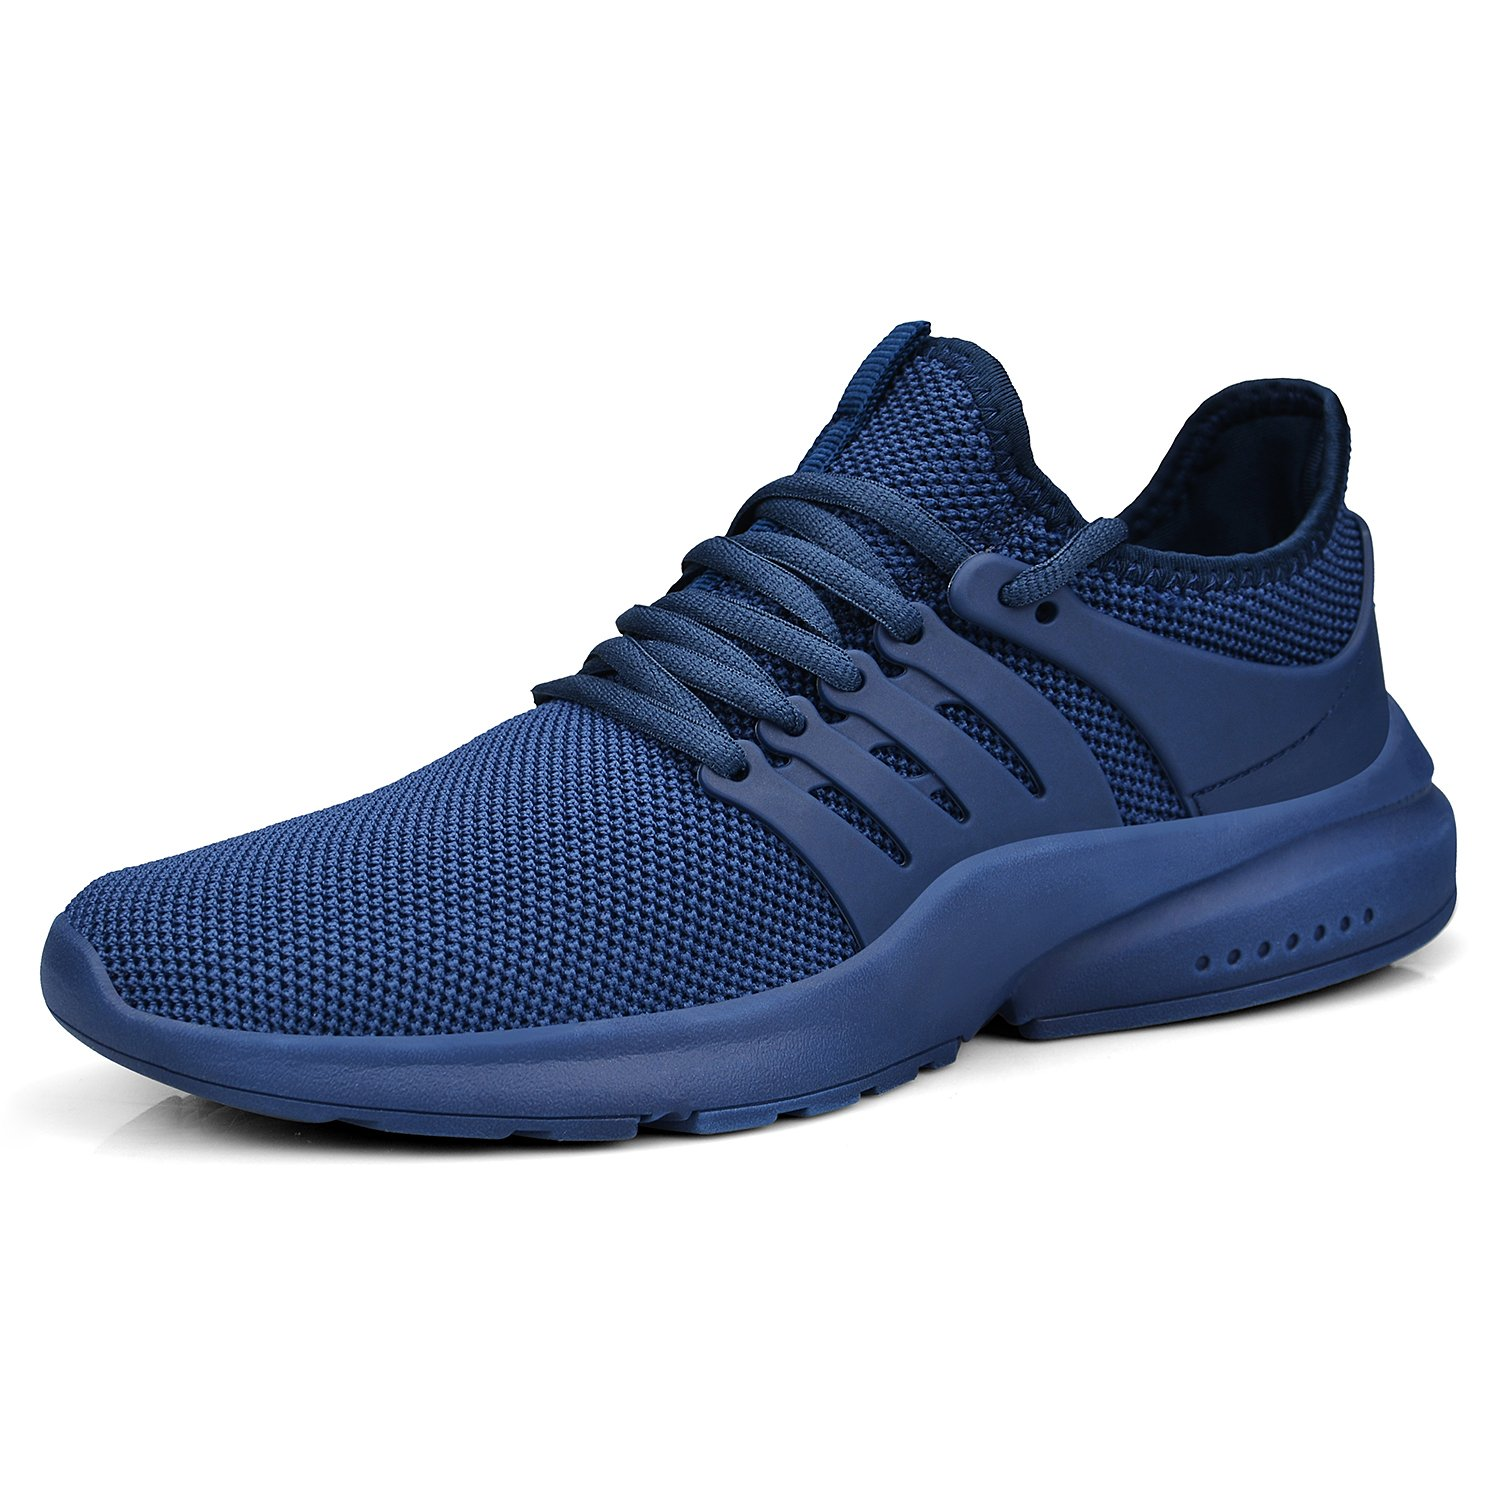 Feetmat Men's Athletic Shoes Ultra Lightweight Breathable Running Walking Training Sports Travel Casual Sneakers